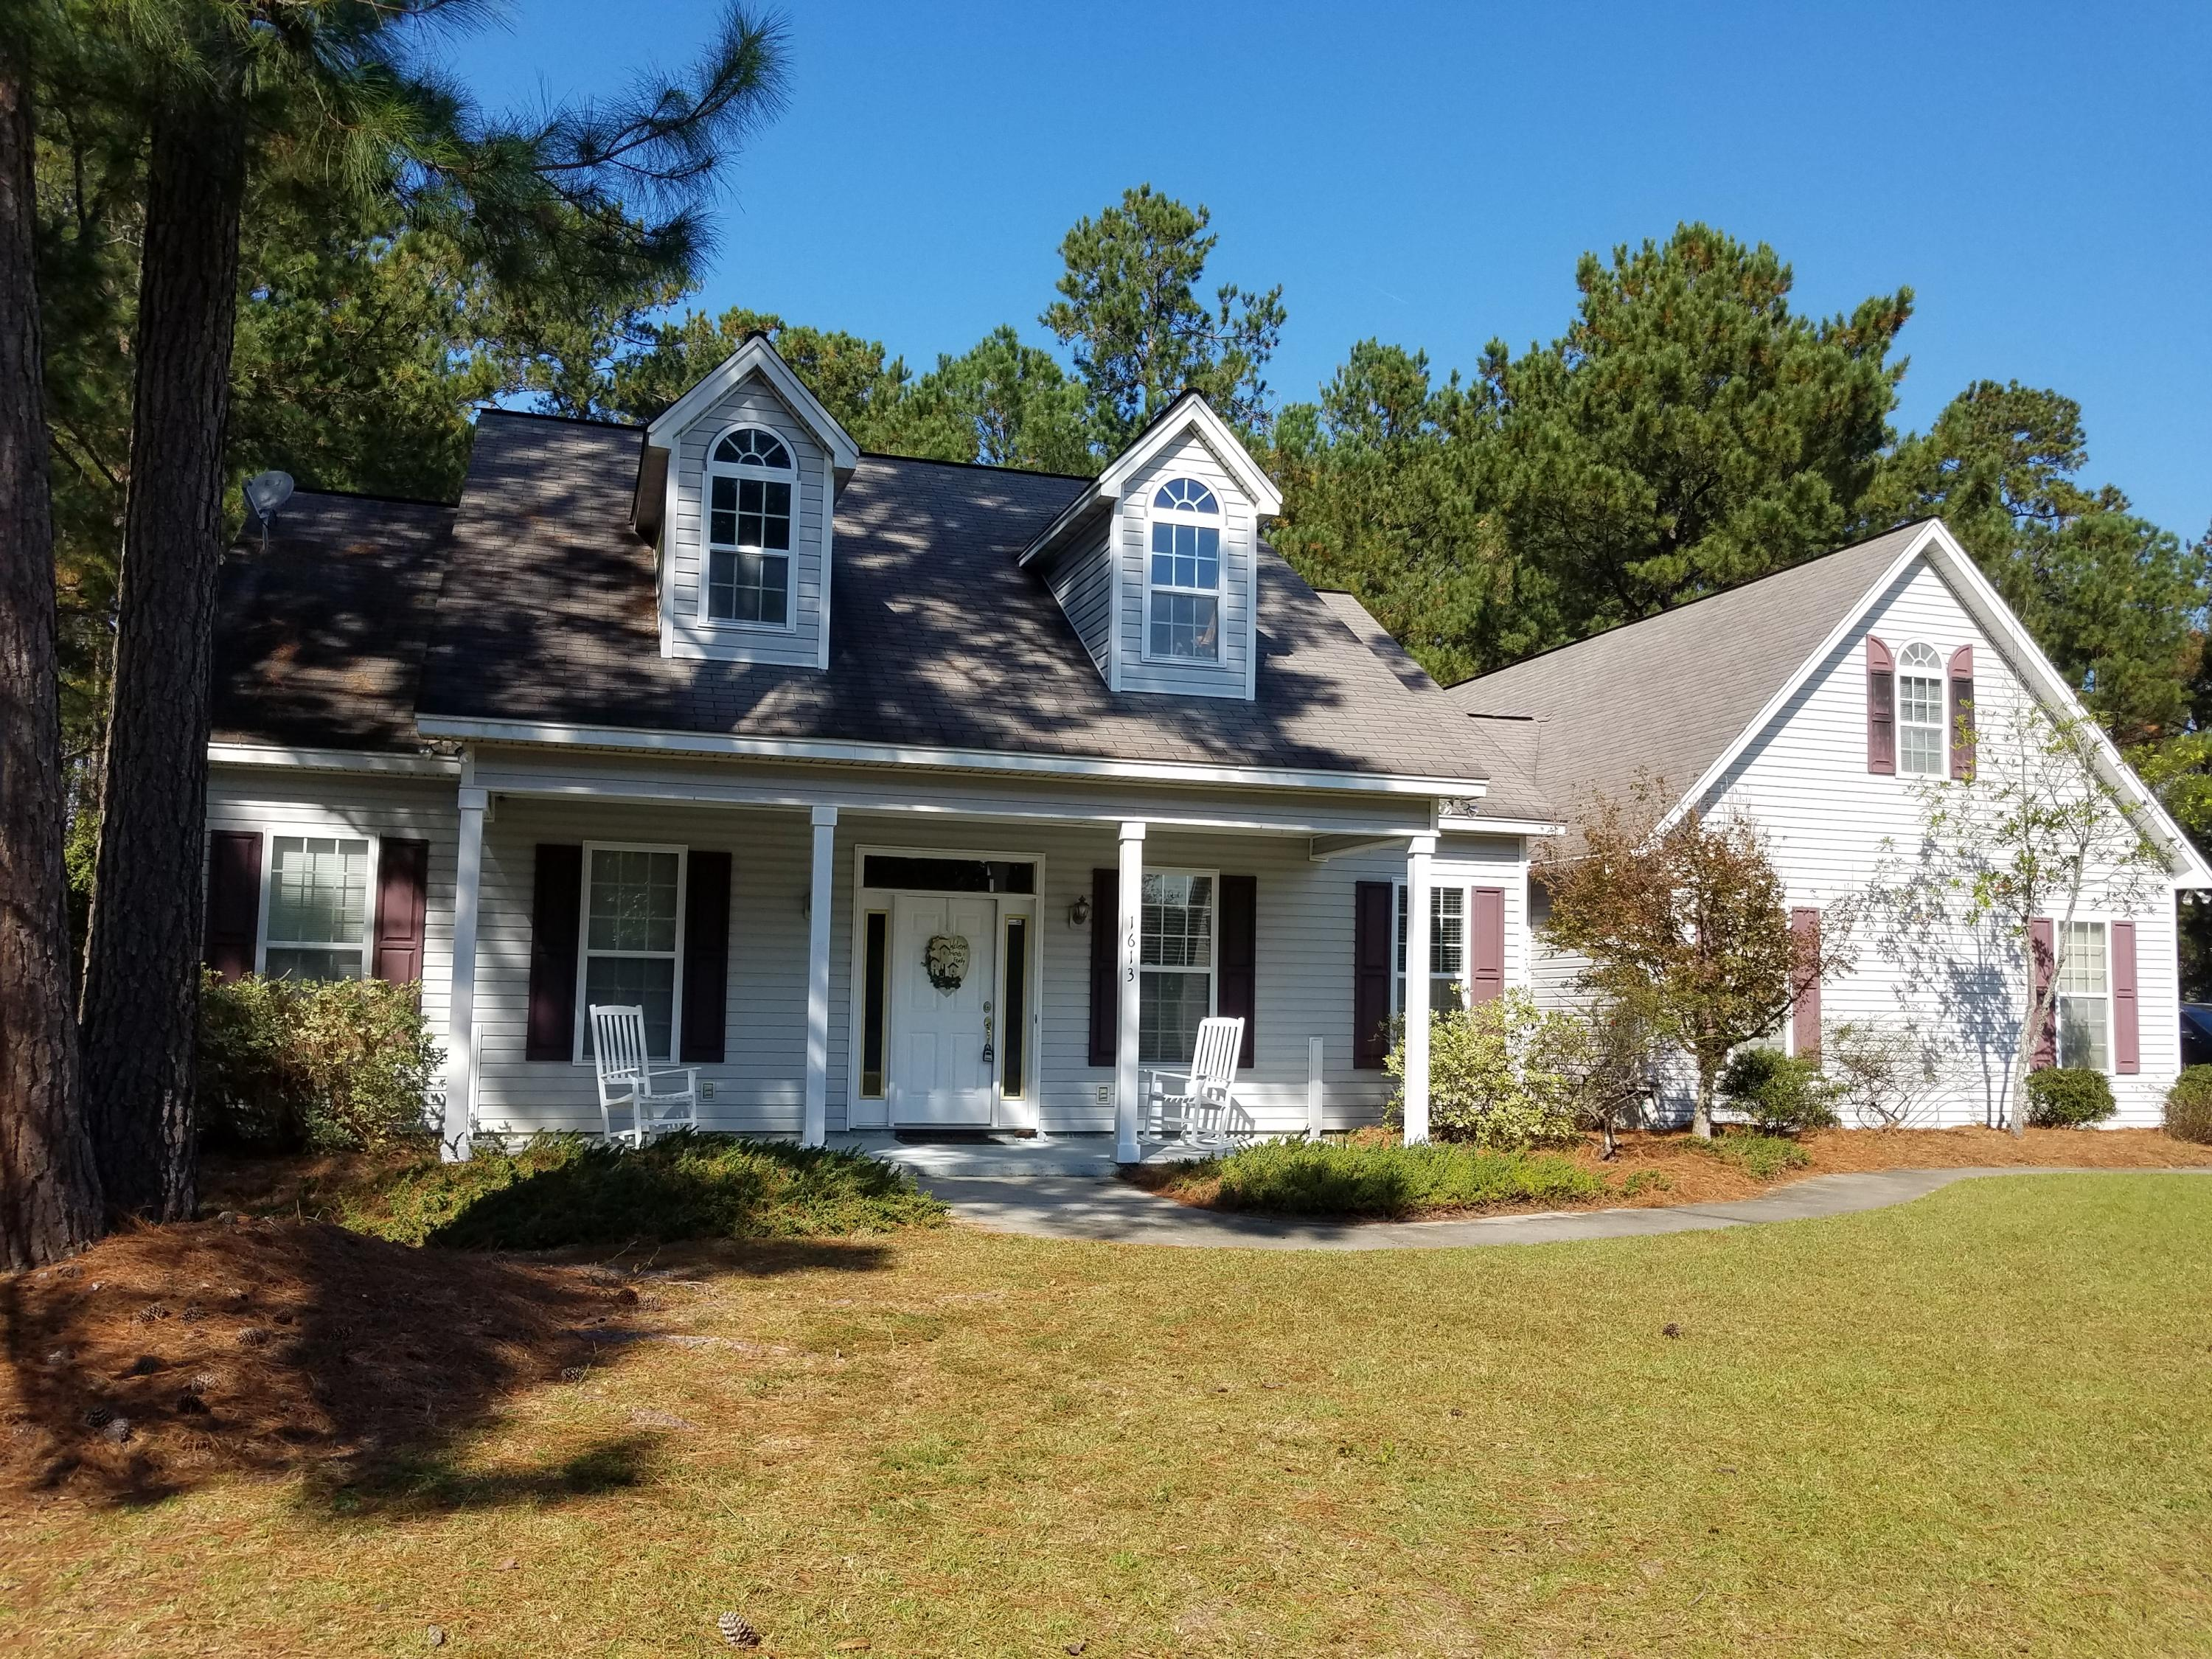 Photo of 1613 Windsor Ln, Moncks Corner, SC 29461